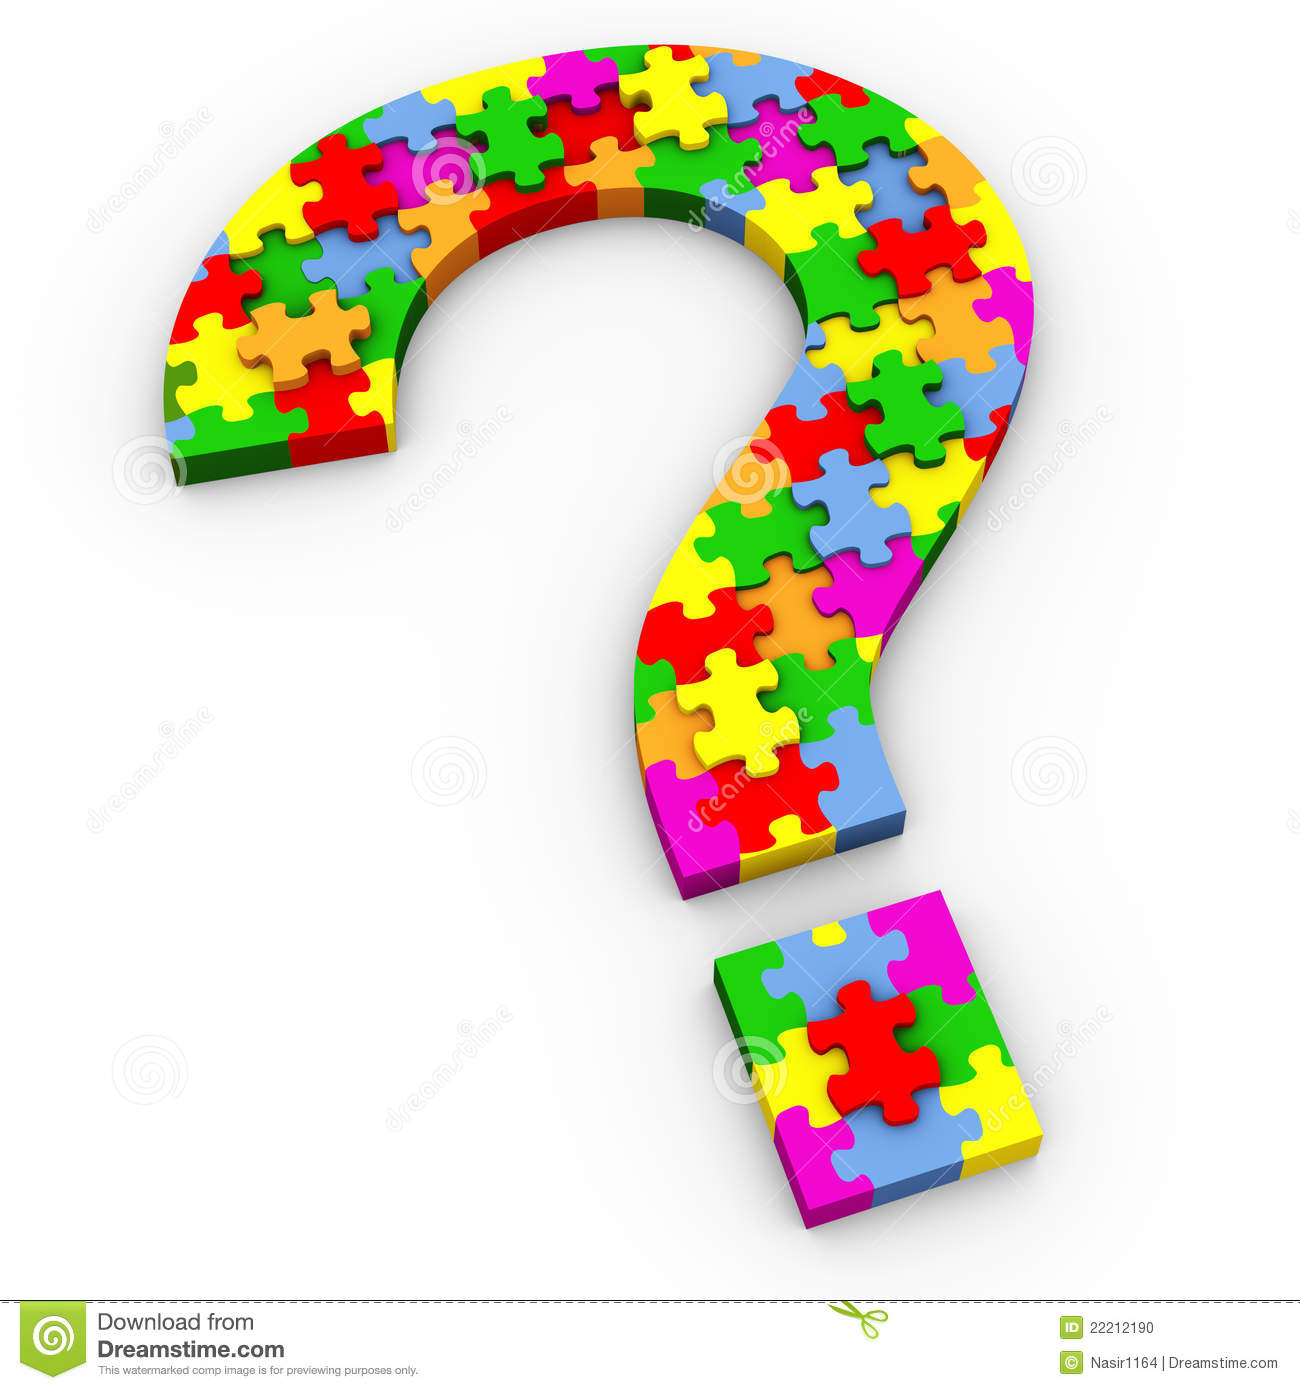 3d question mark symbol made of colorful puzzle pieces.